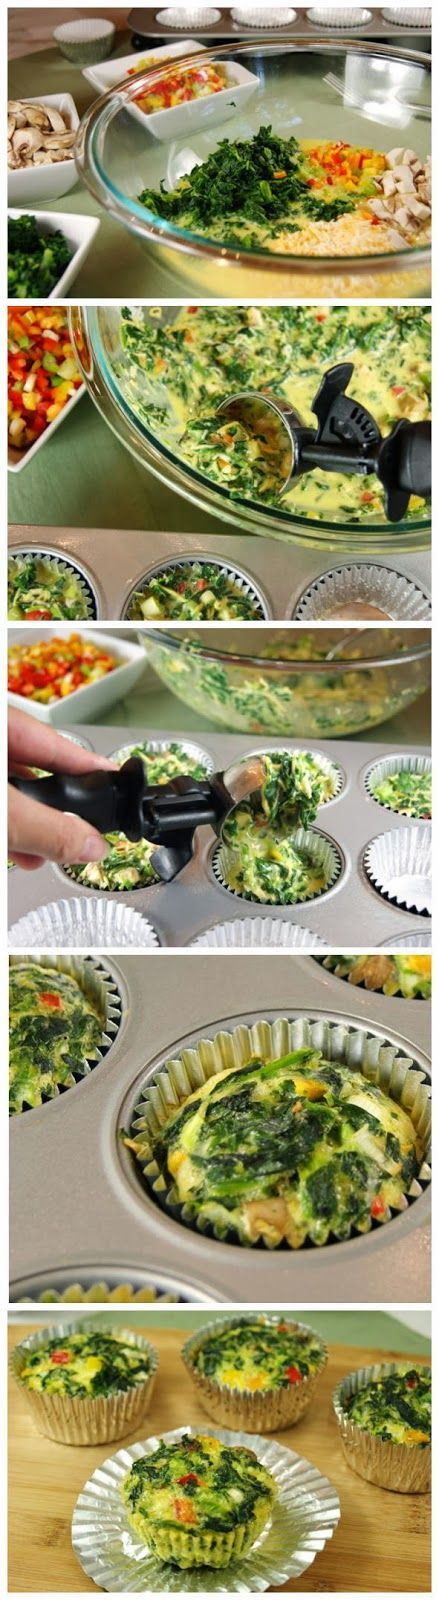 Vegetable Quiche Cups To-Go: Healthy, quick and easy recipe that makes 12 muffin sized quiches. Great for lunches, snacks or to freeze. | The Micro Gardener